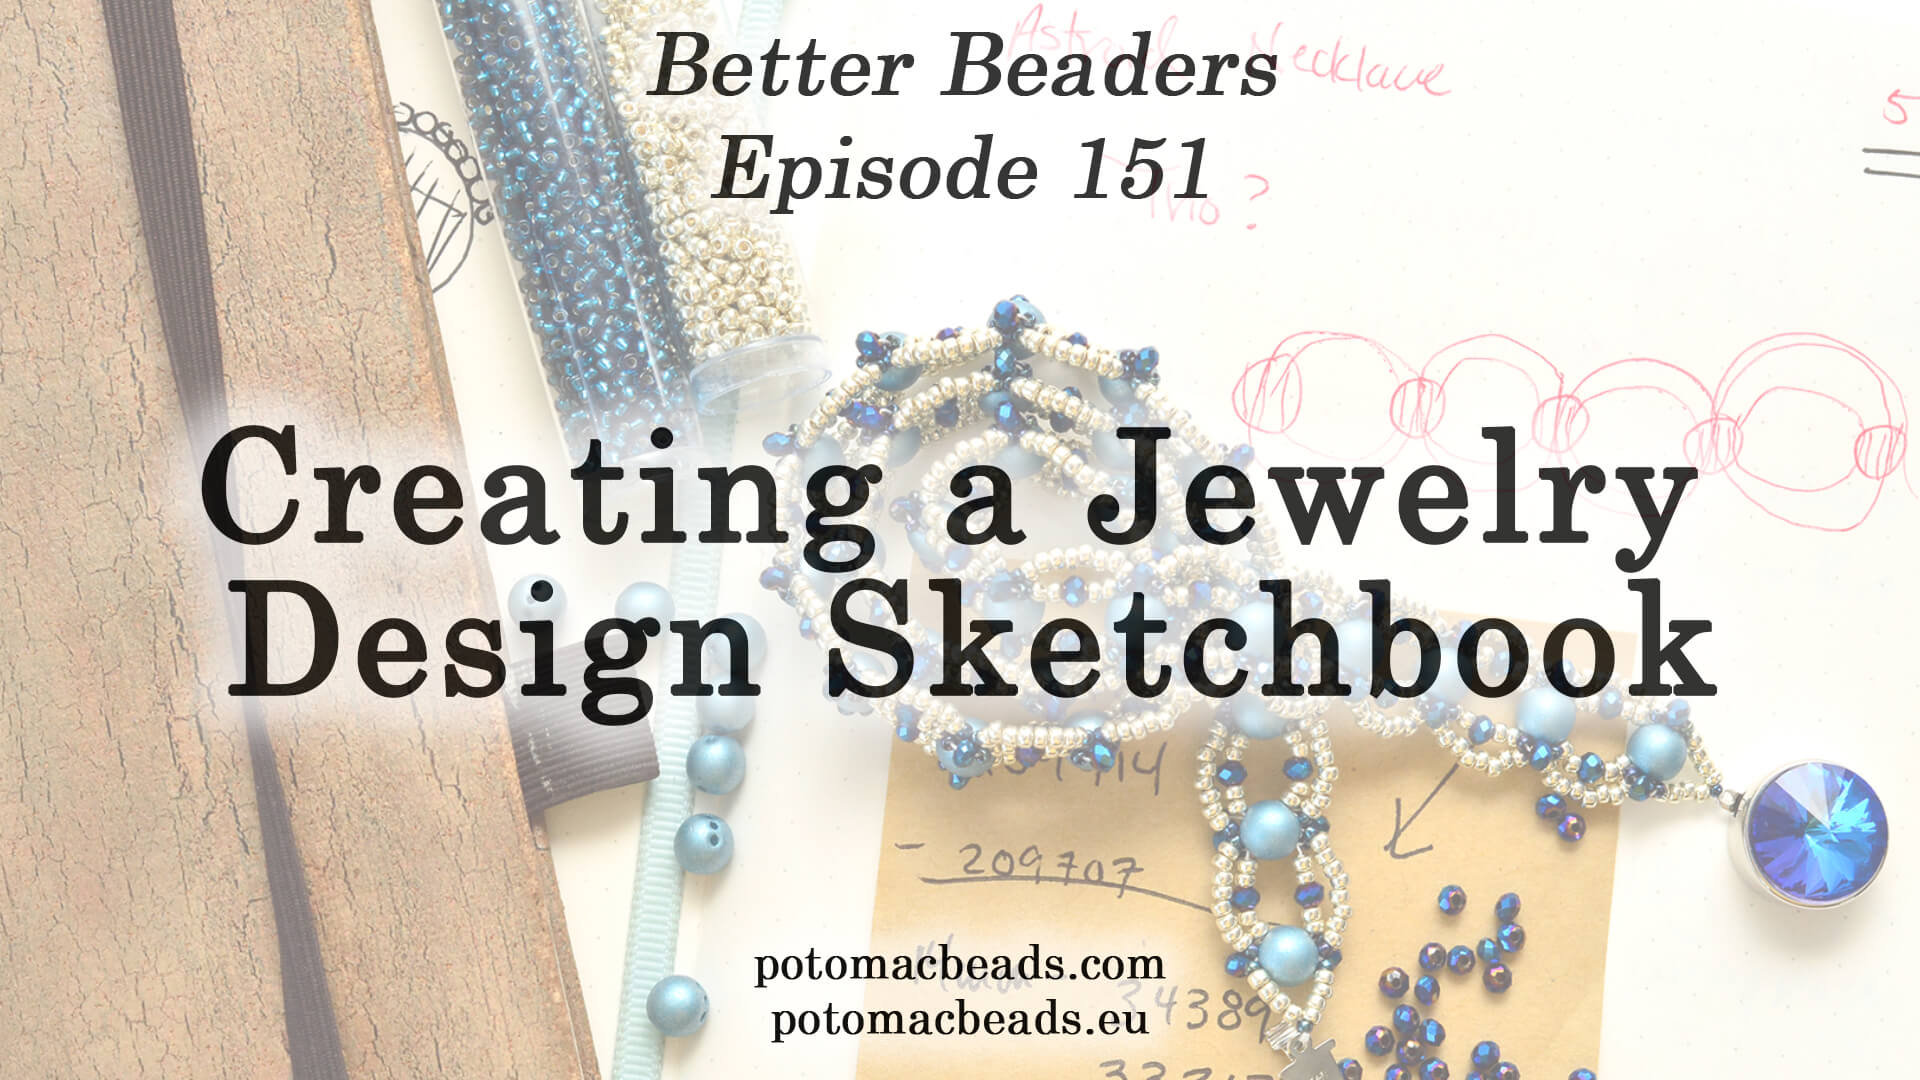 How to Bead Jewelry / Better Beader Episodes / Better Beader Episode 151 - Creating a Jewelry Design Sketchbook